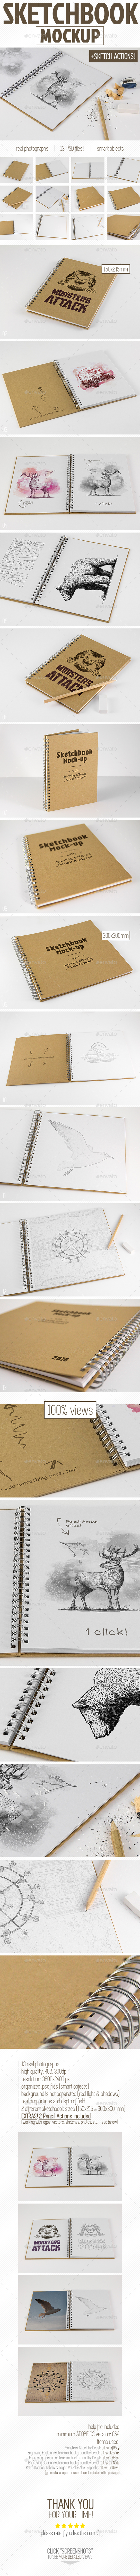 Sketchbook Mockup & Sketch Actions - Miscellaneous Print